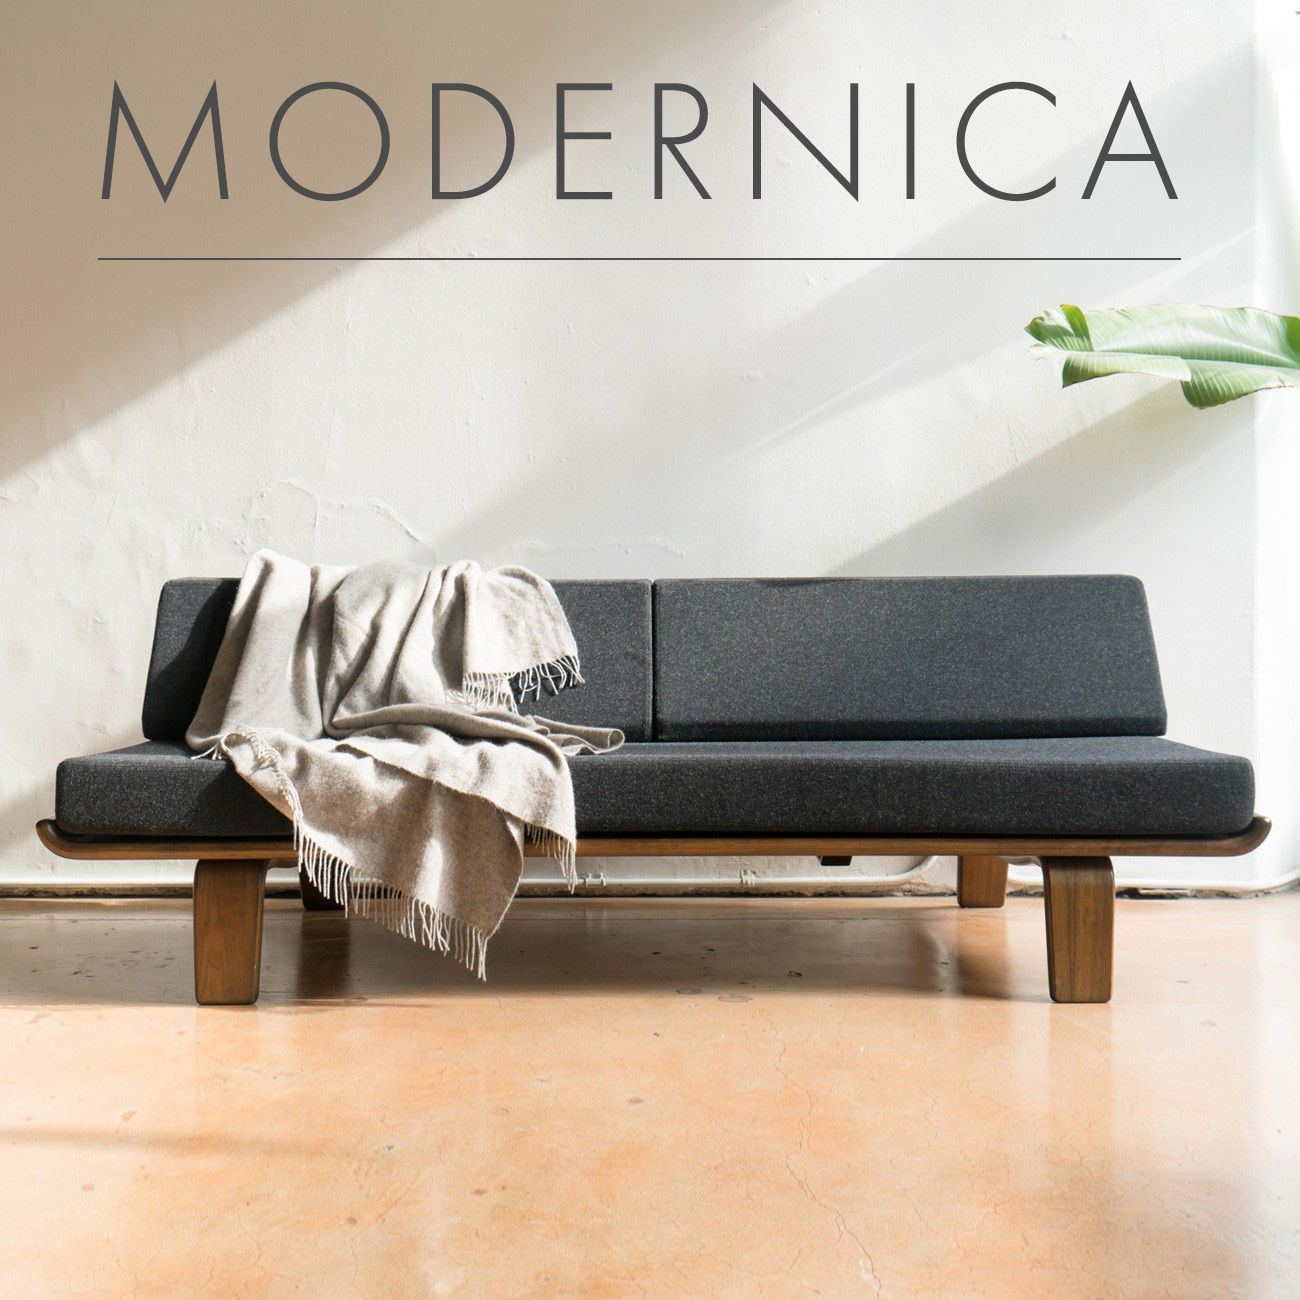 Modernica has been at the forefront of the modernist movement starting with the case study series